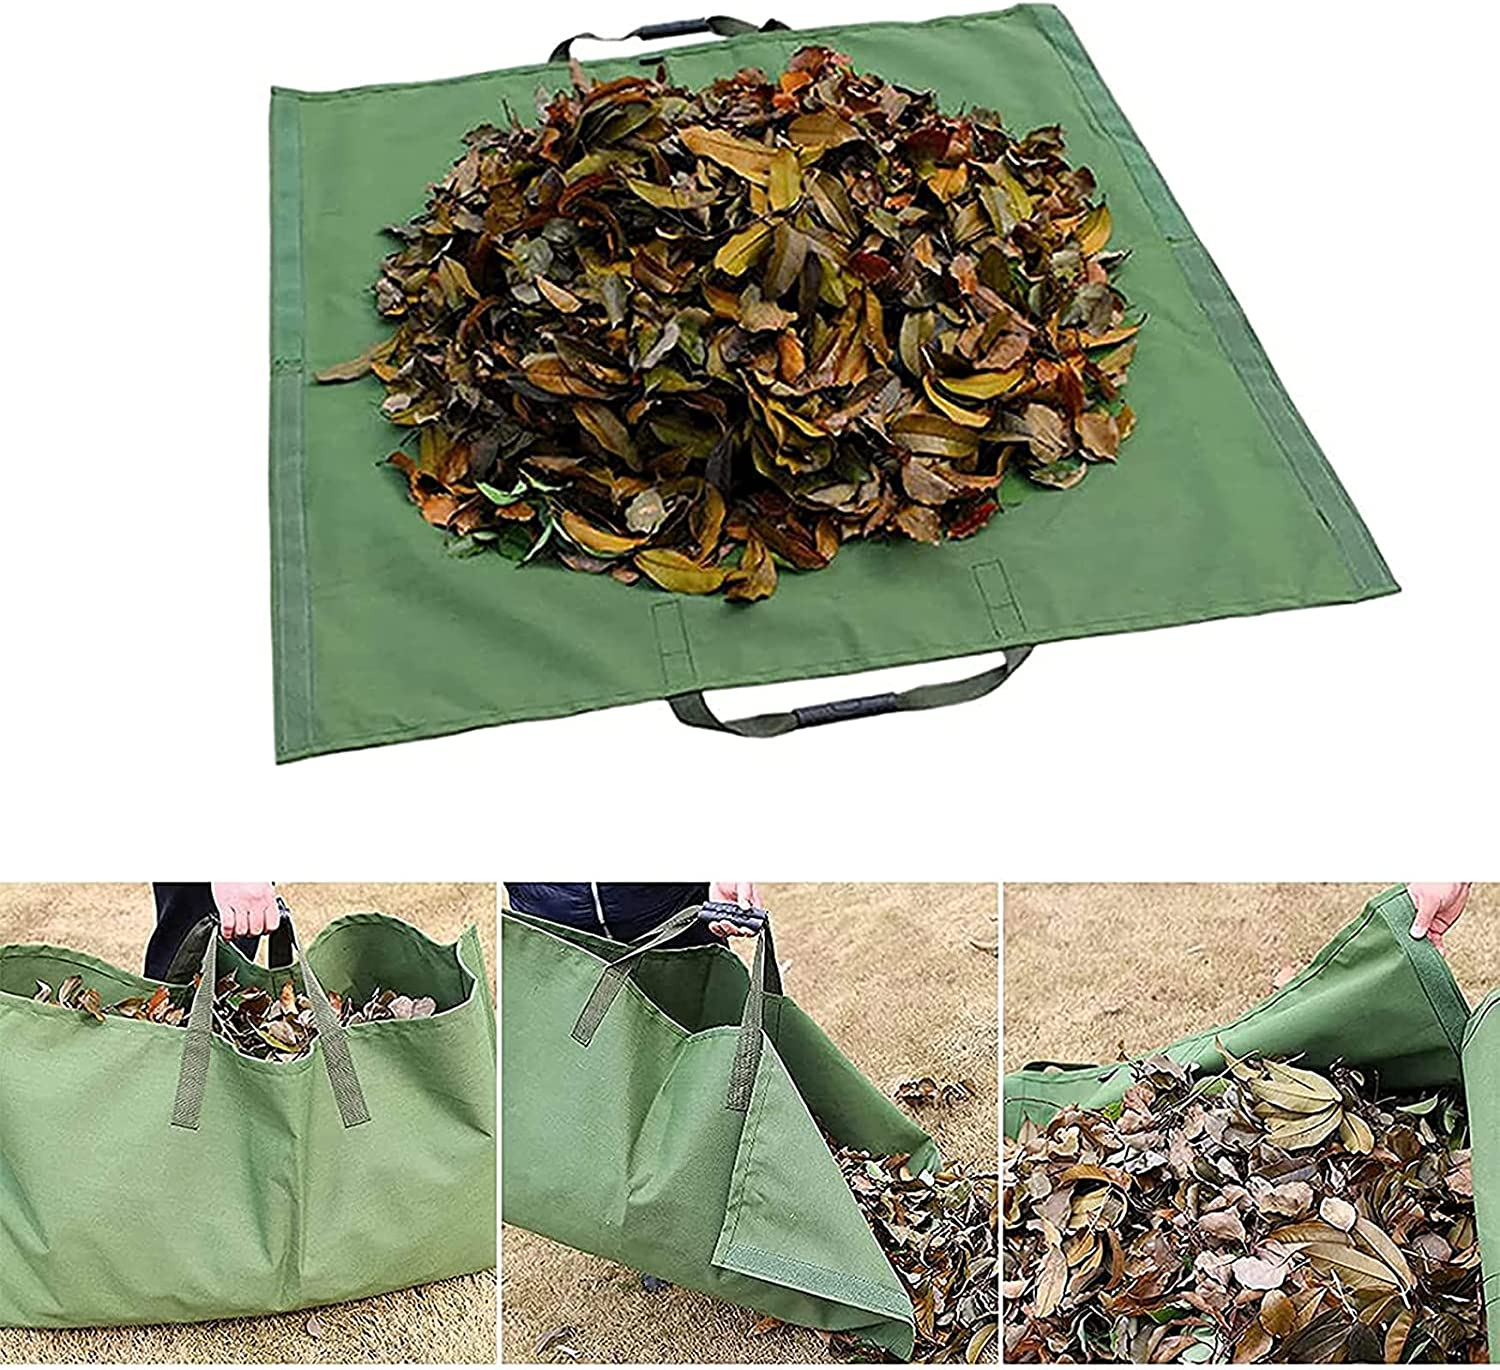 2 Latest item in 1 Today's only Leaves Storage Bag Duty Collect Multipurpose Heavy Trash